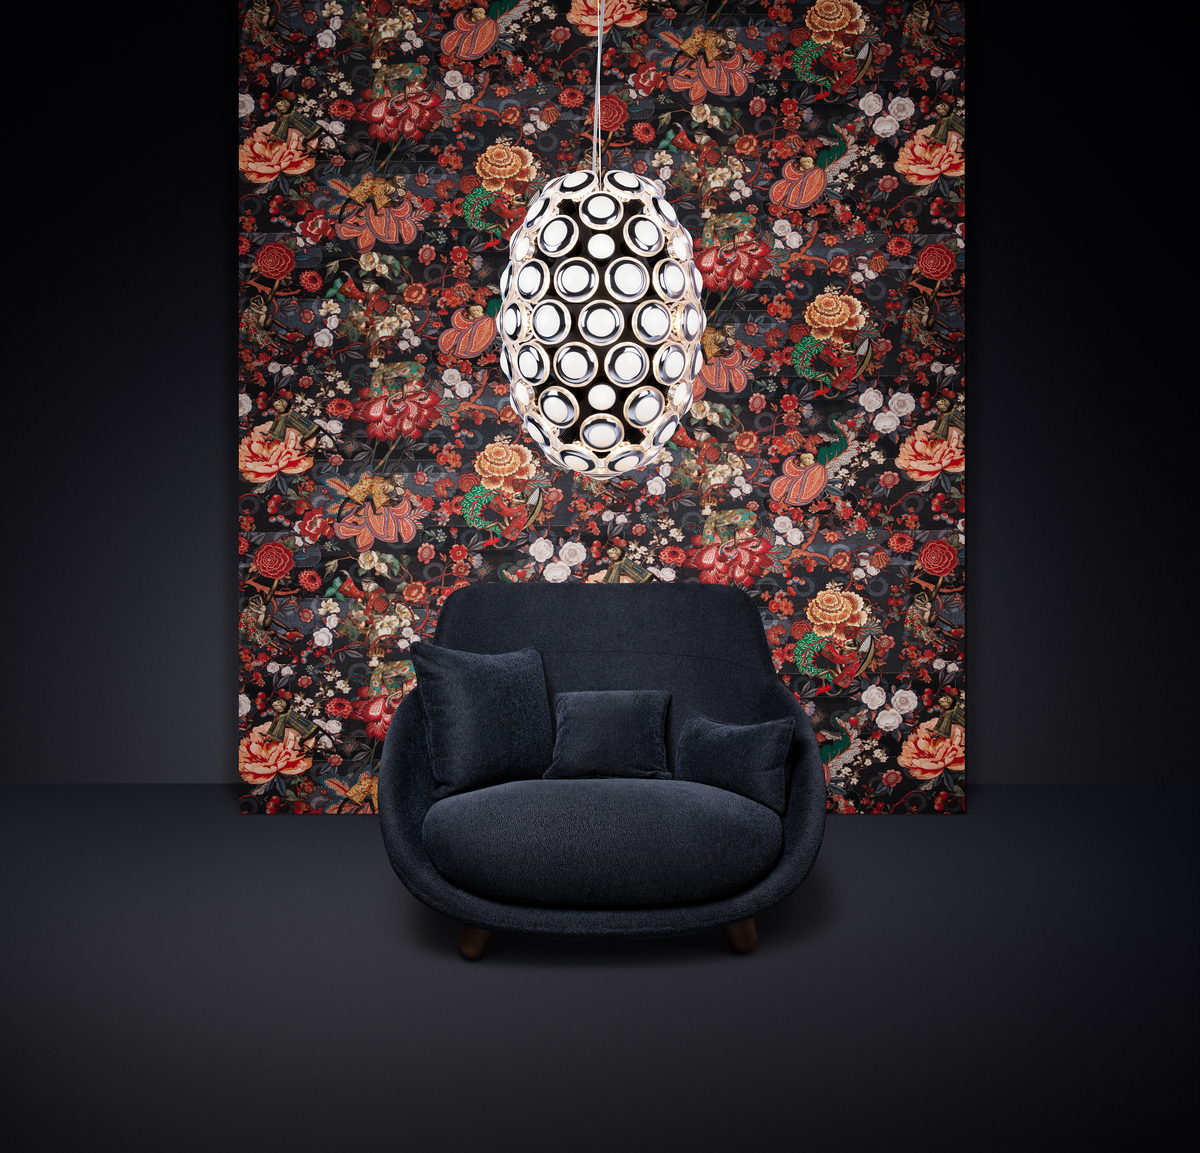 Poetic composition with Love Sofa and Iconic Eyes suspension light